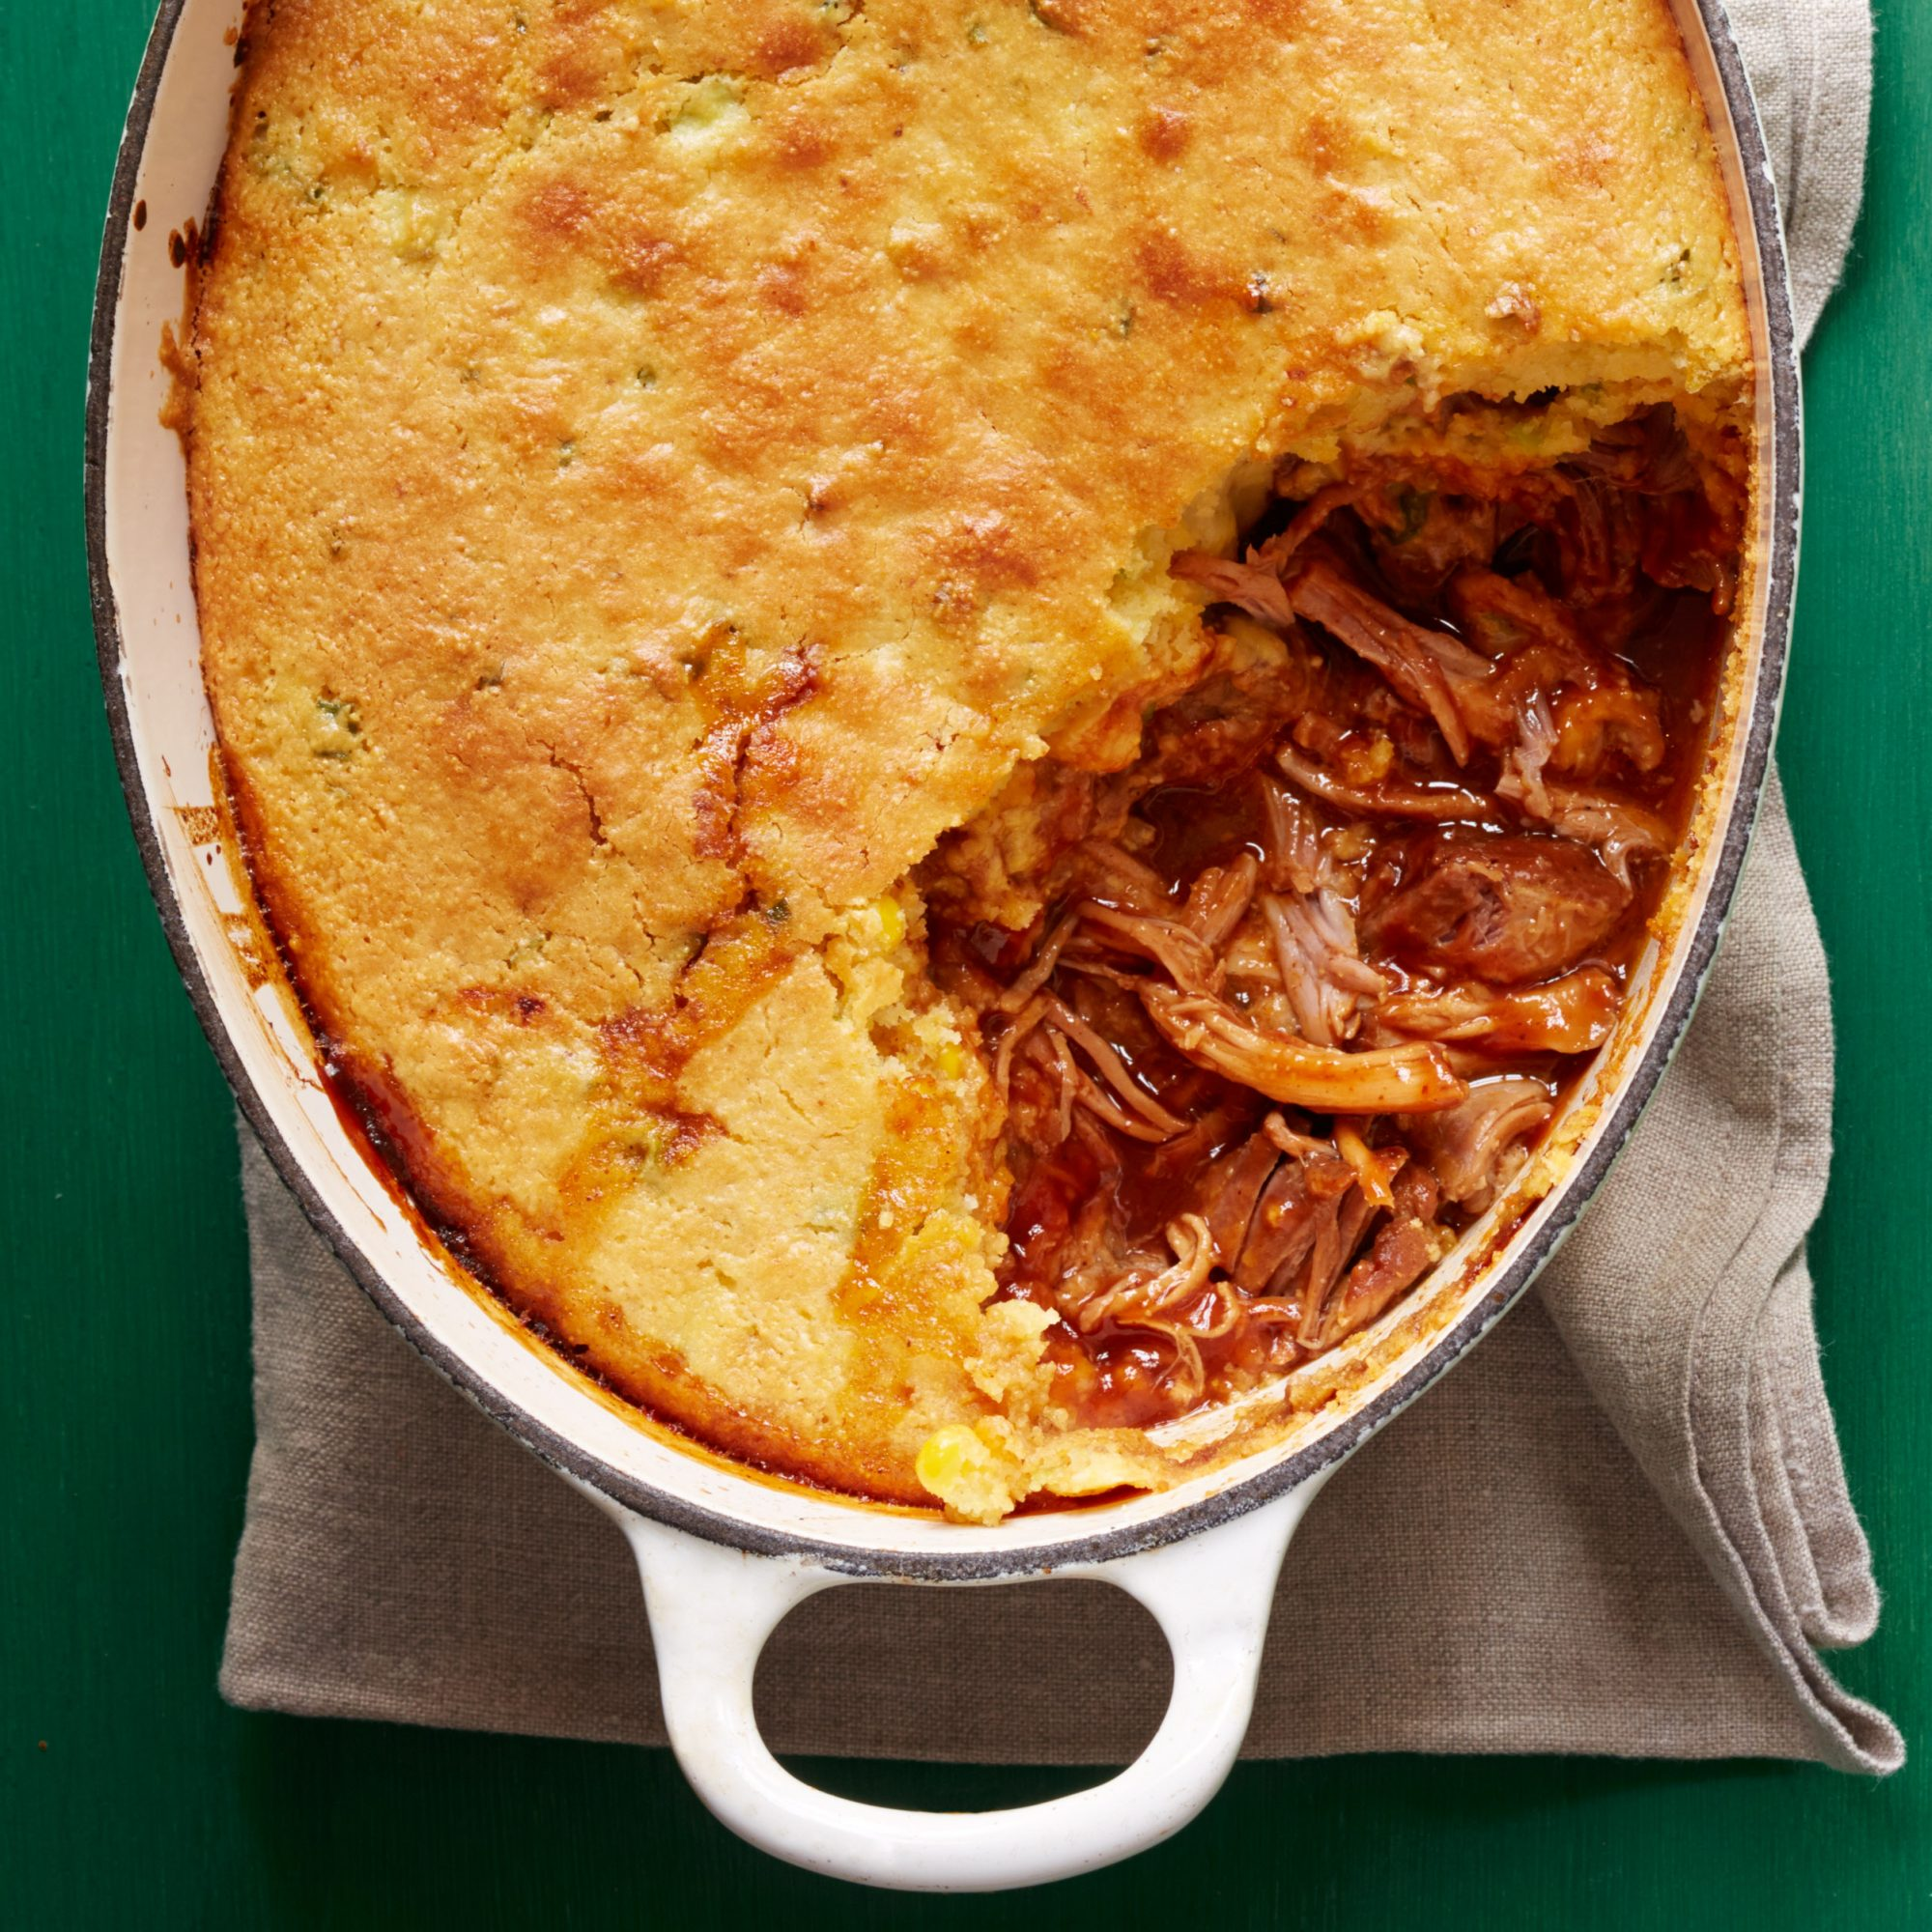 Pulled Pork with Cornbread Topping